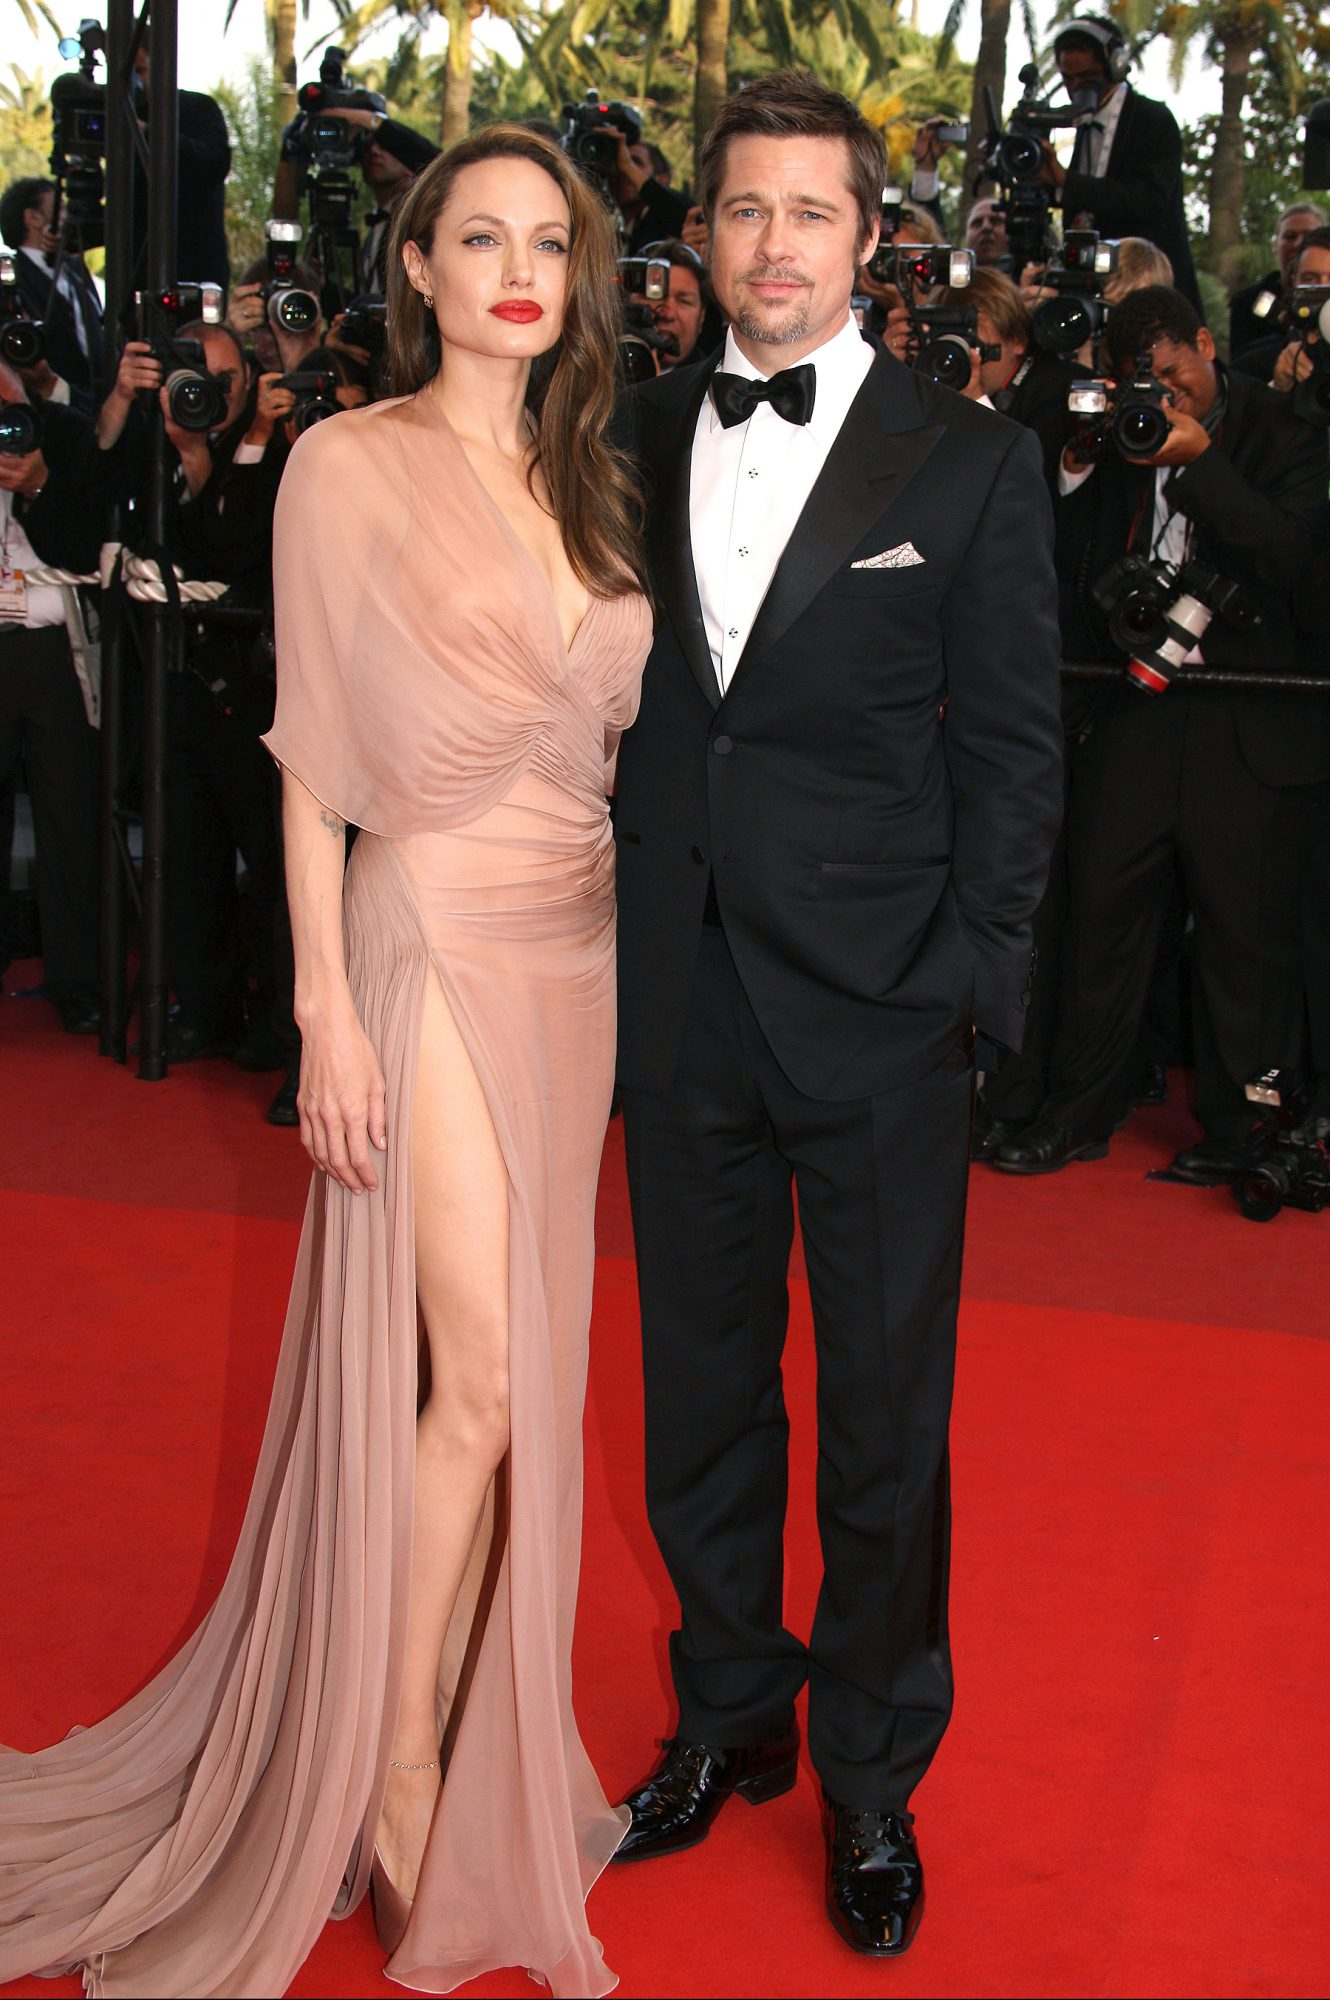 """05/20/2009. Brad Pitt and Angelina Jolie on the red carpet for the movie """"Inglourious Basterds"""". 62nd Cannes Film Festival 2009."""